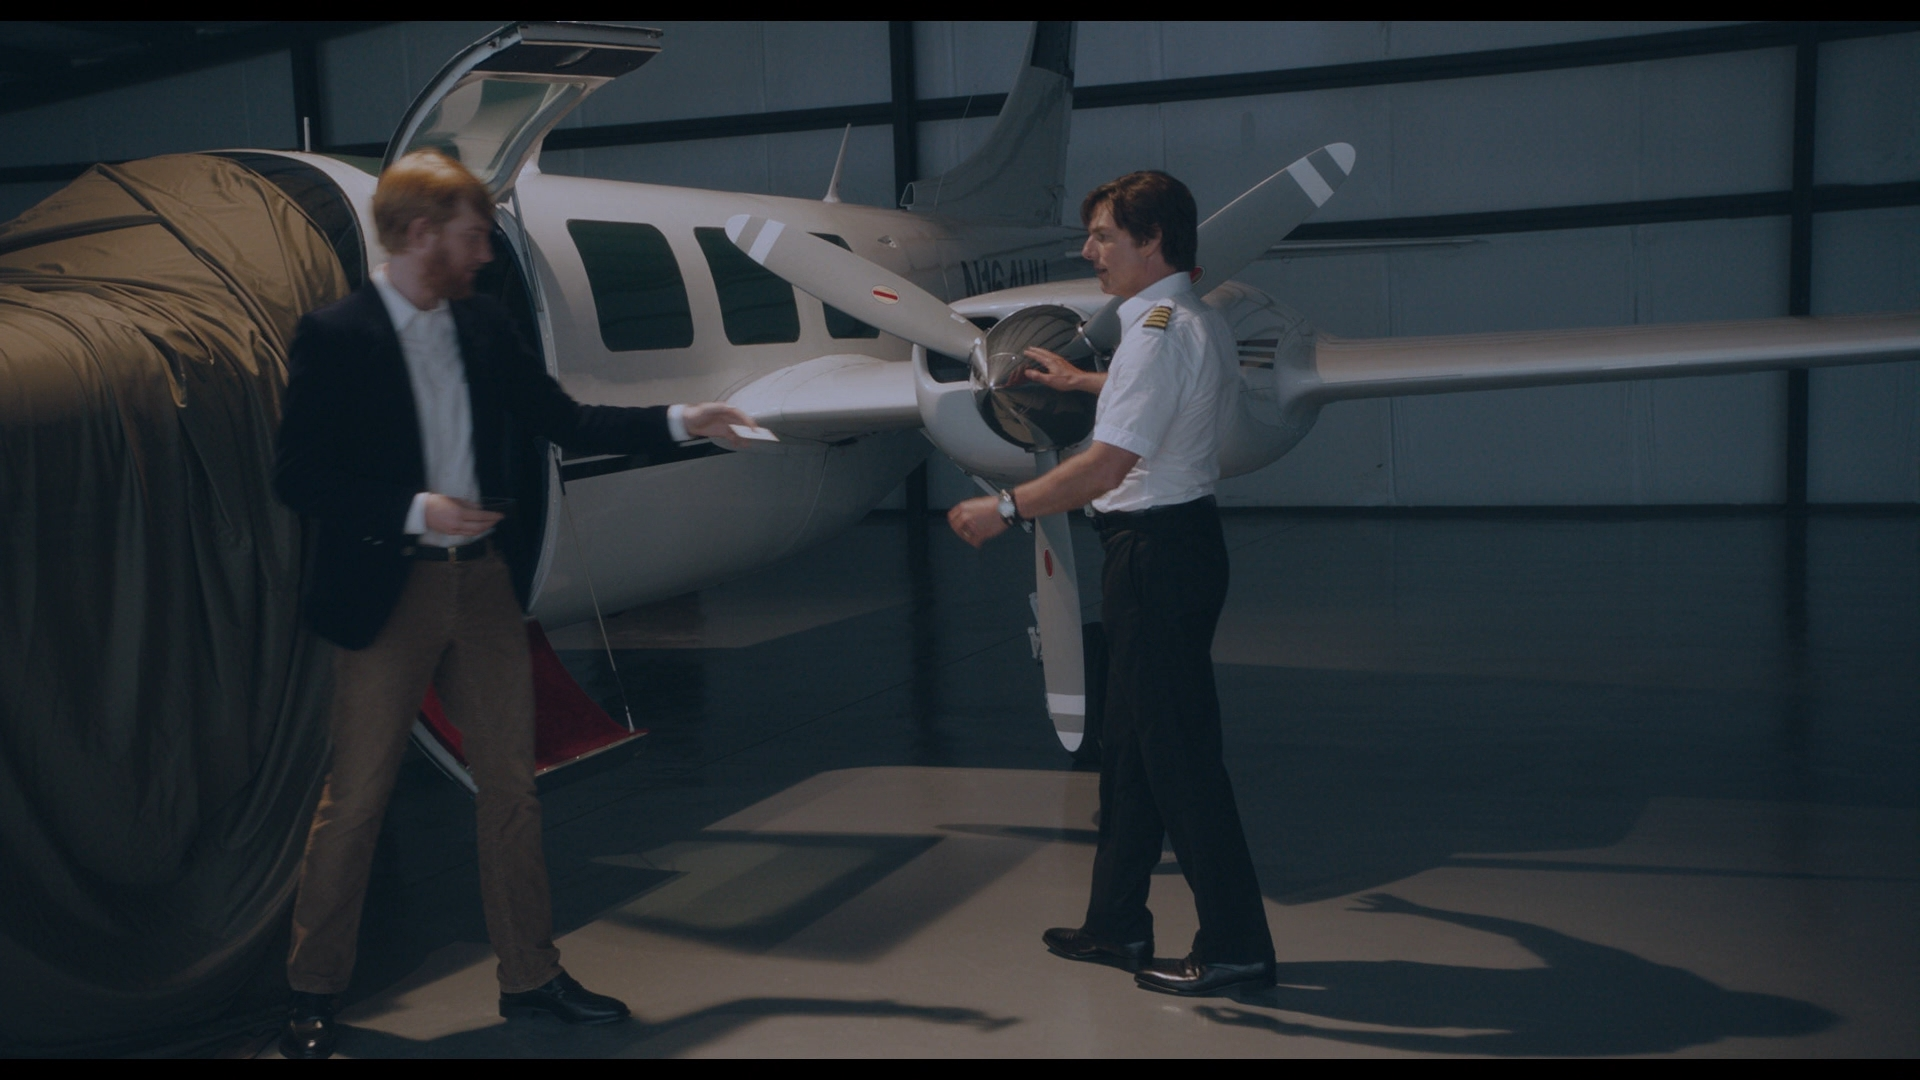 AMERICAN MADE (2017) - Barry Seal's (Tom Cruise) Costume - Image 19 of 23